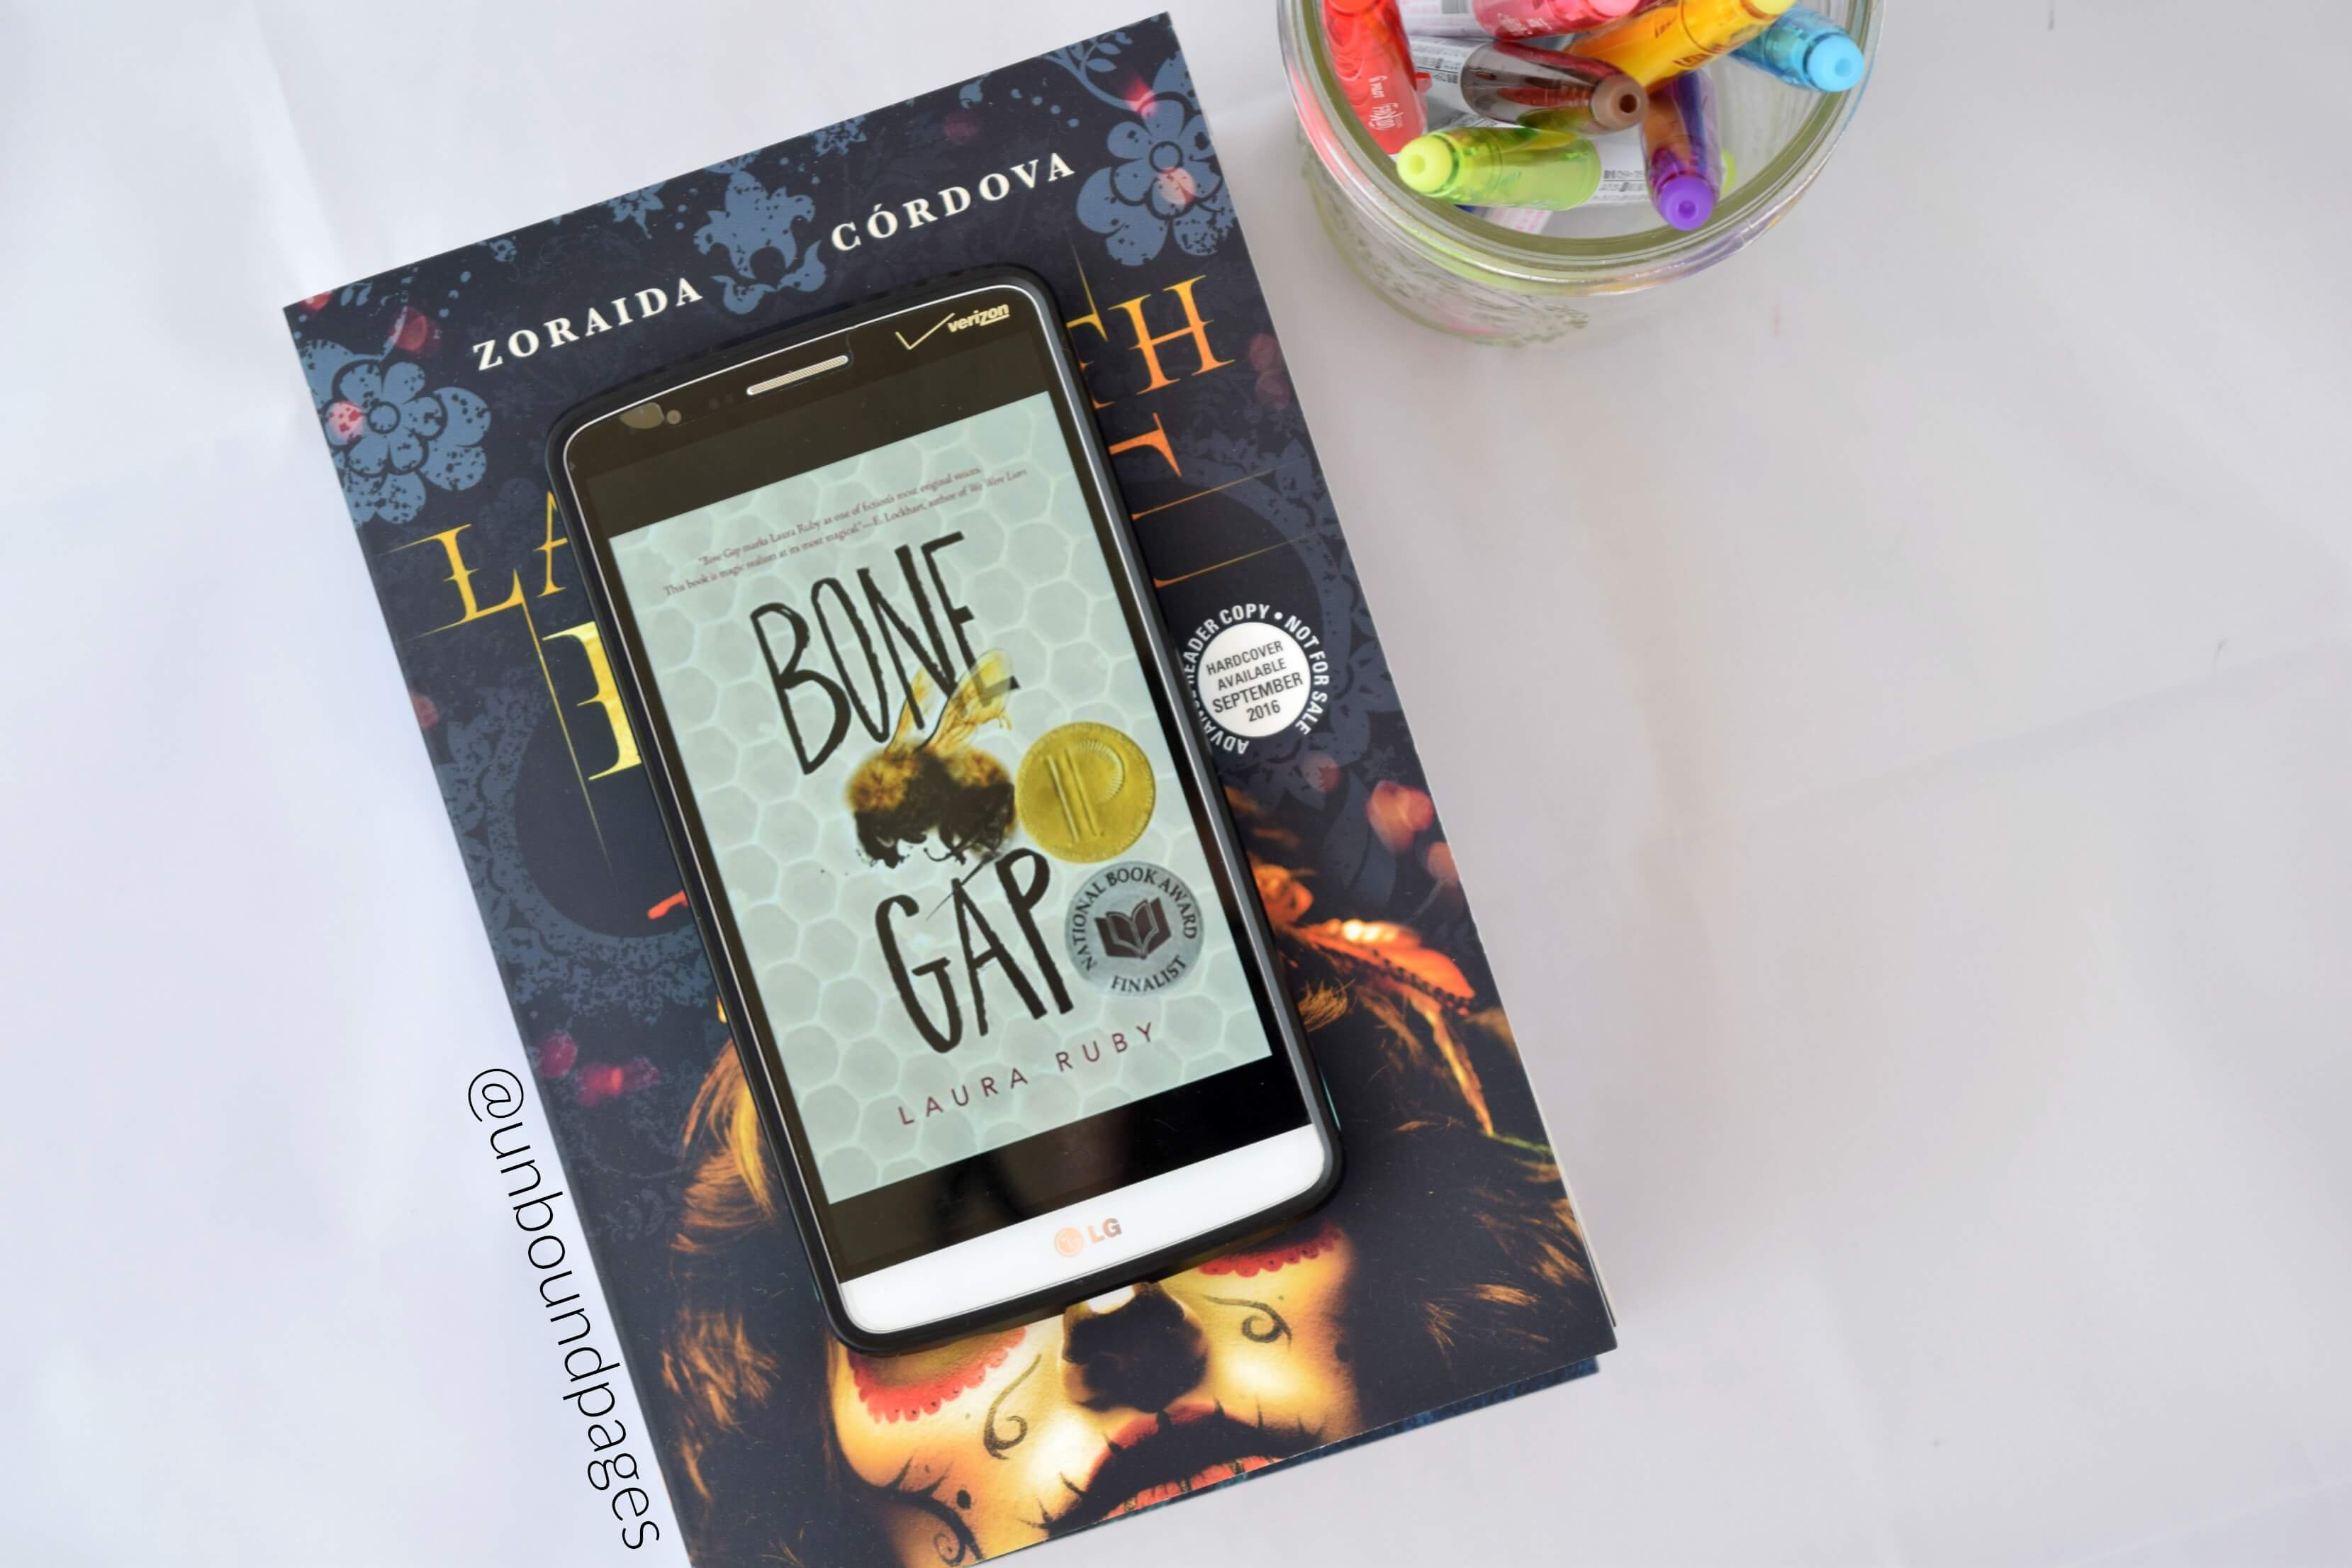 Bone Gap kept me hooked the whole time reading, but the magical realism threw me off - unboundpages.com